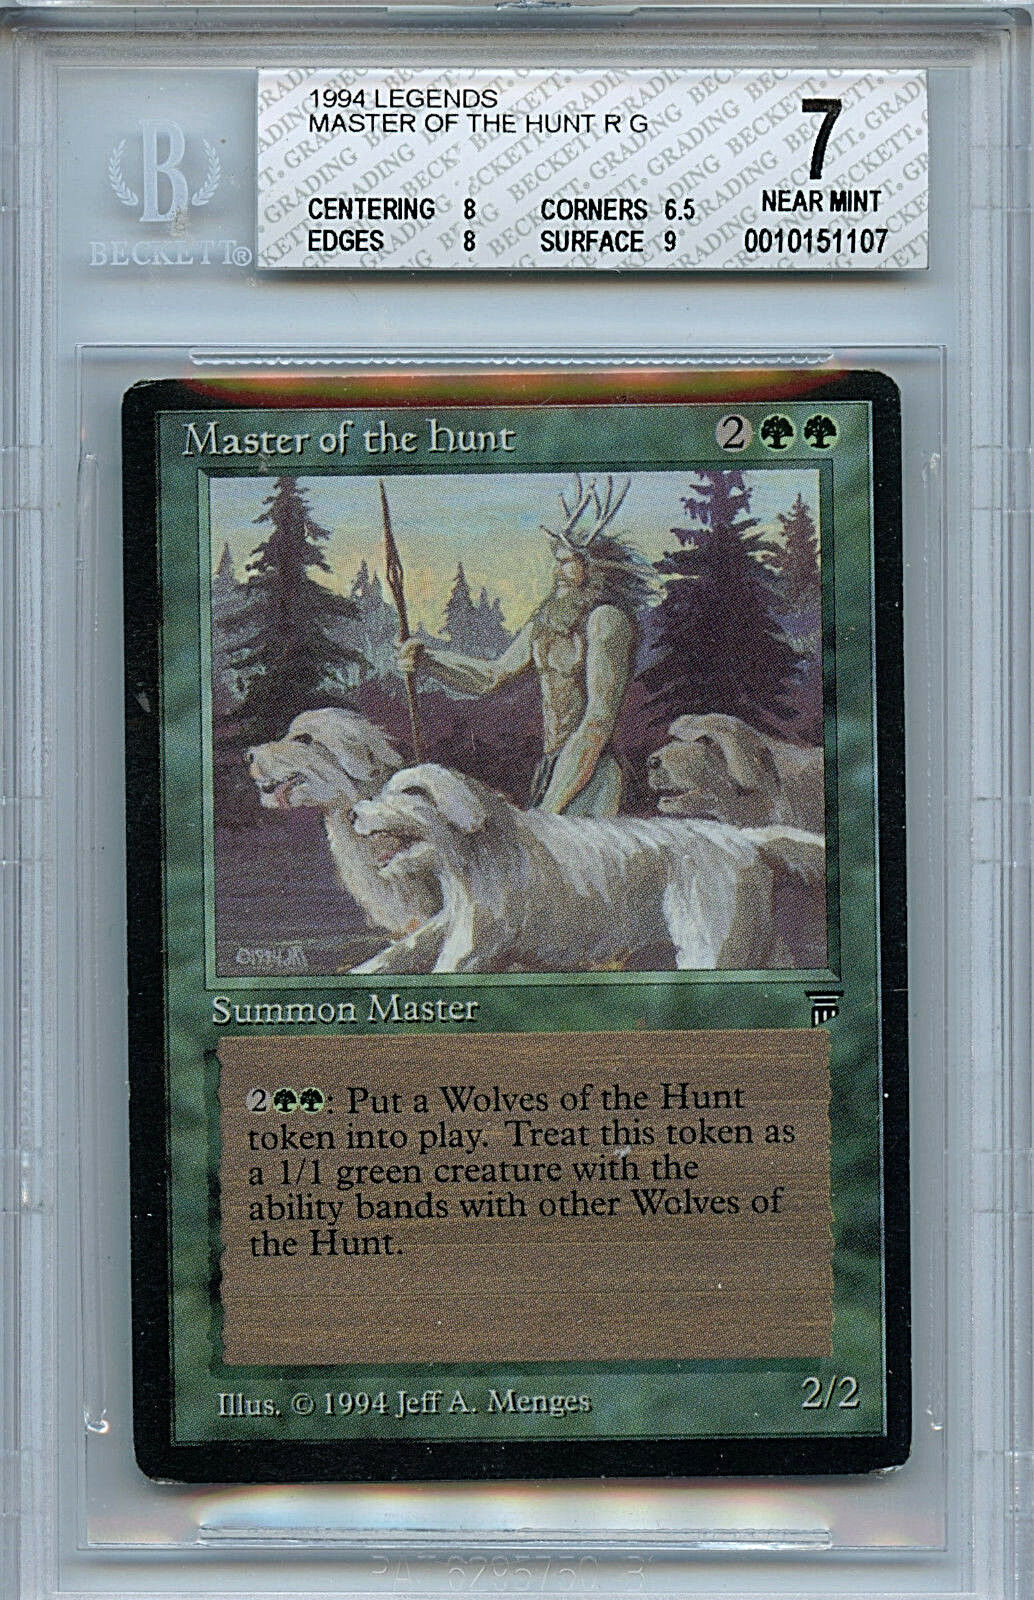 MTG Legends Master of the Hunt BGS 7.0 (7) NM card 1107